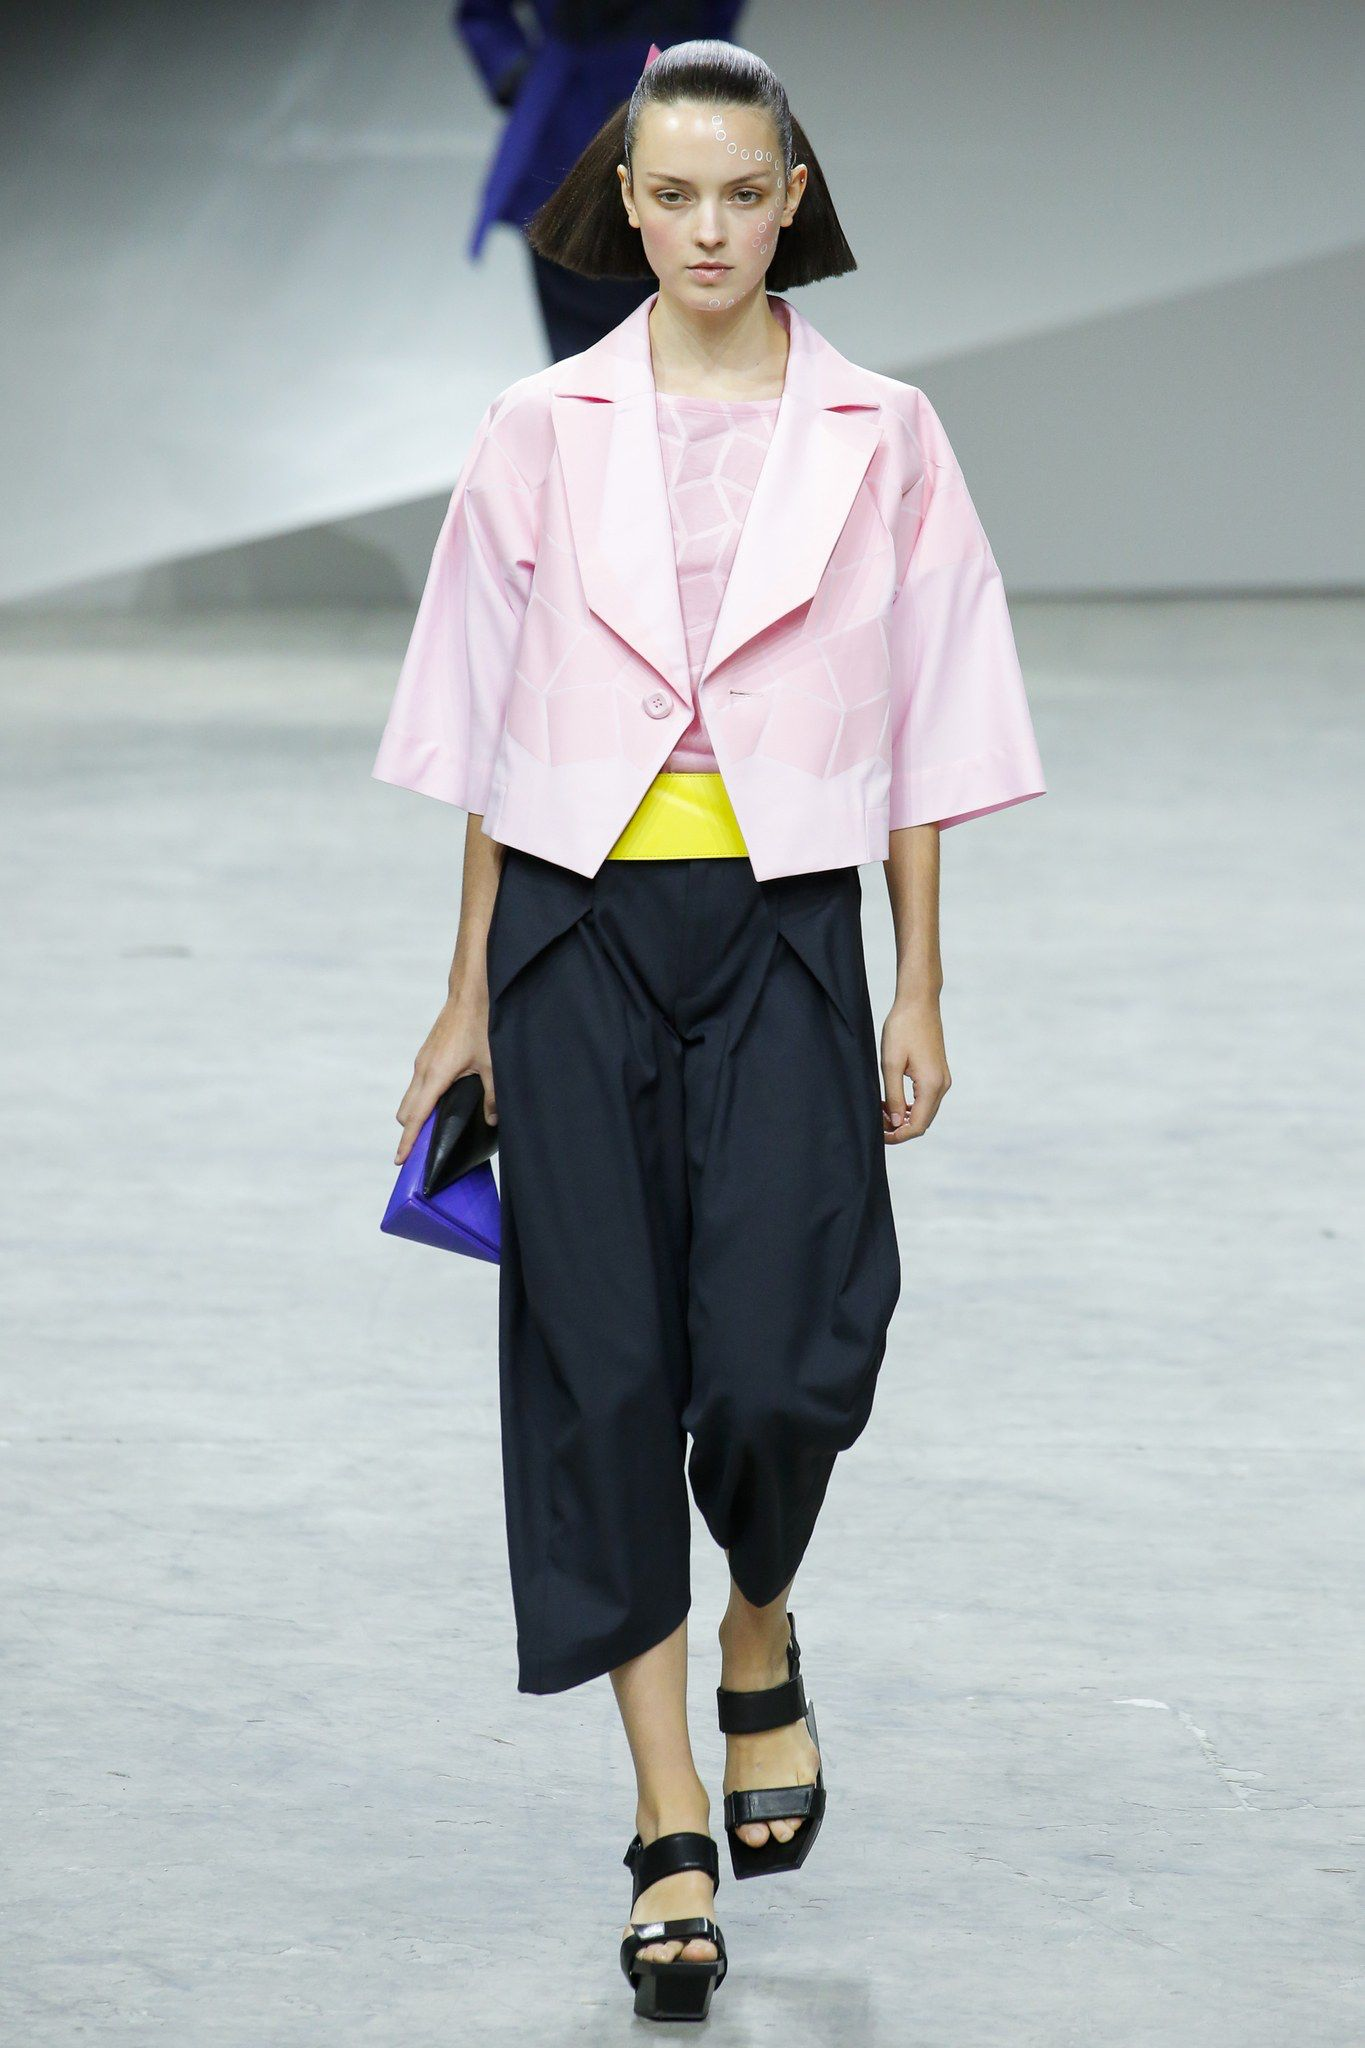 a8691834be5c Issey Miyake Spring 2017 Ready-to-Wear Fashion Show